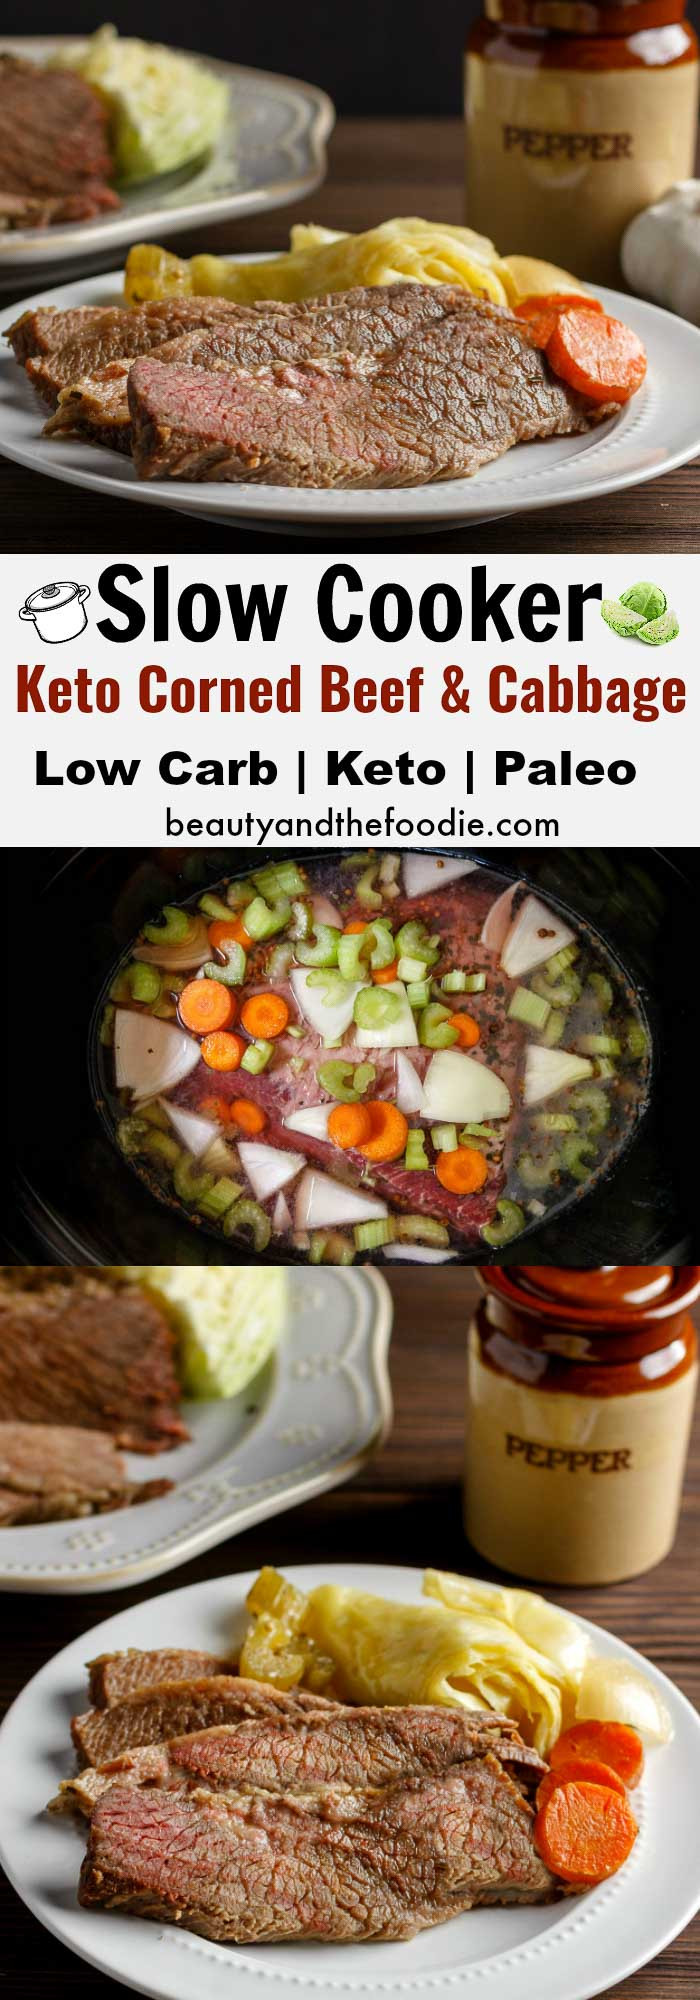 Corned Beef Recipes Slow Cooker Keto  Slow Cooker Keto Corned Beef Cabbage